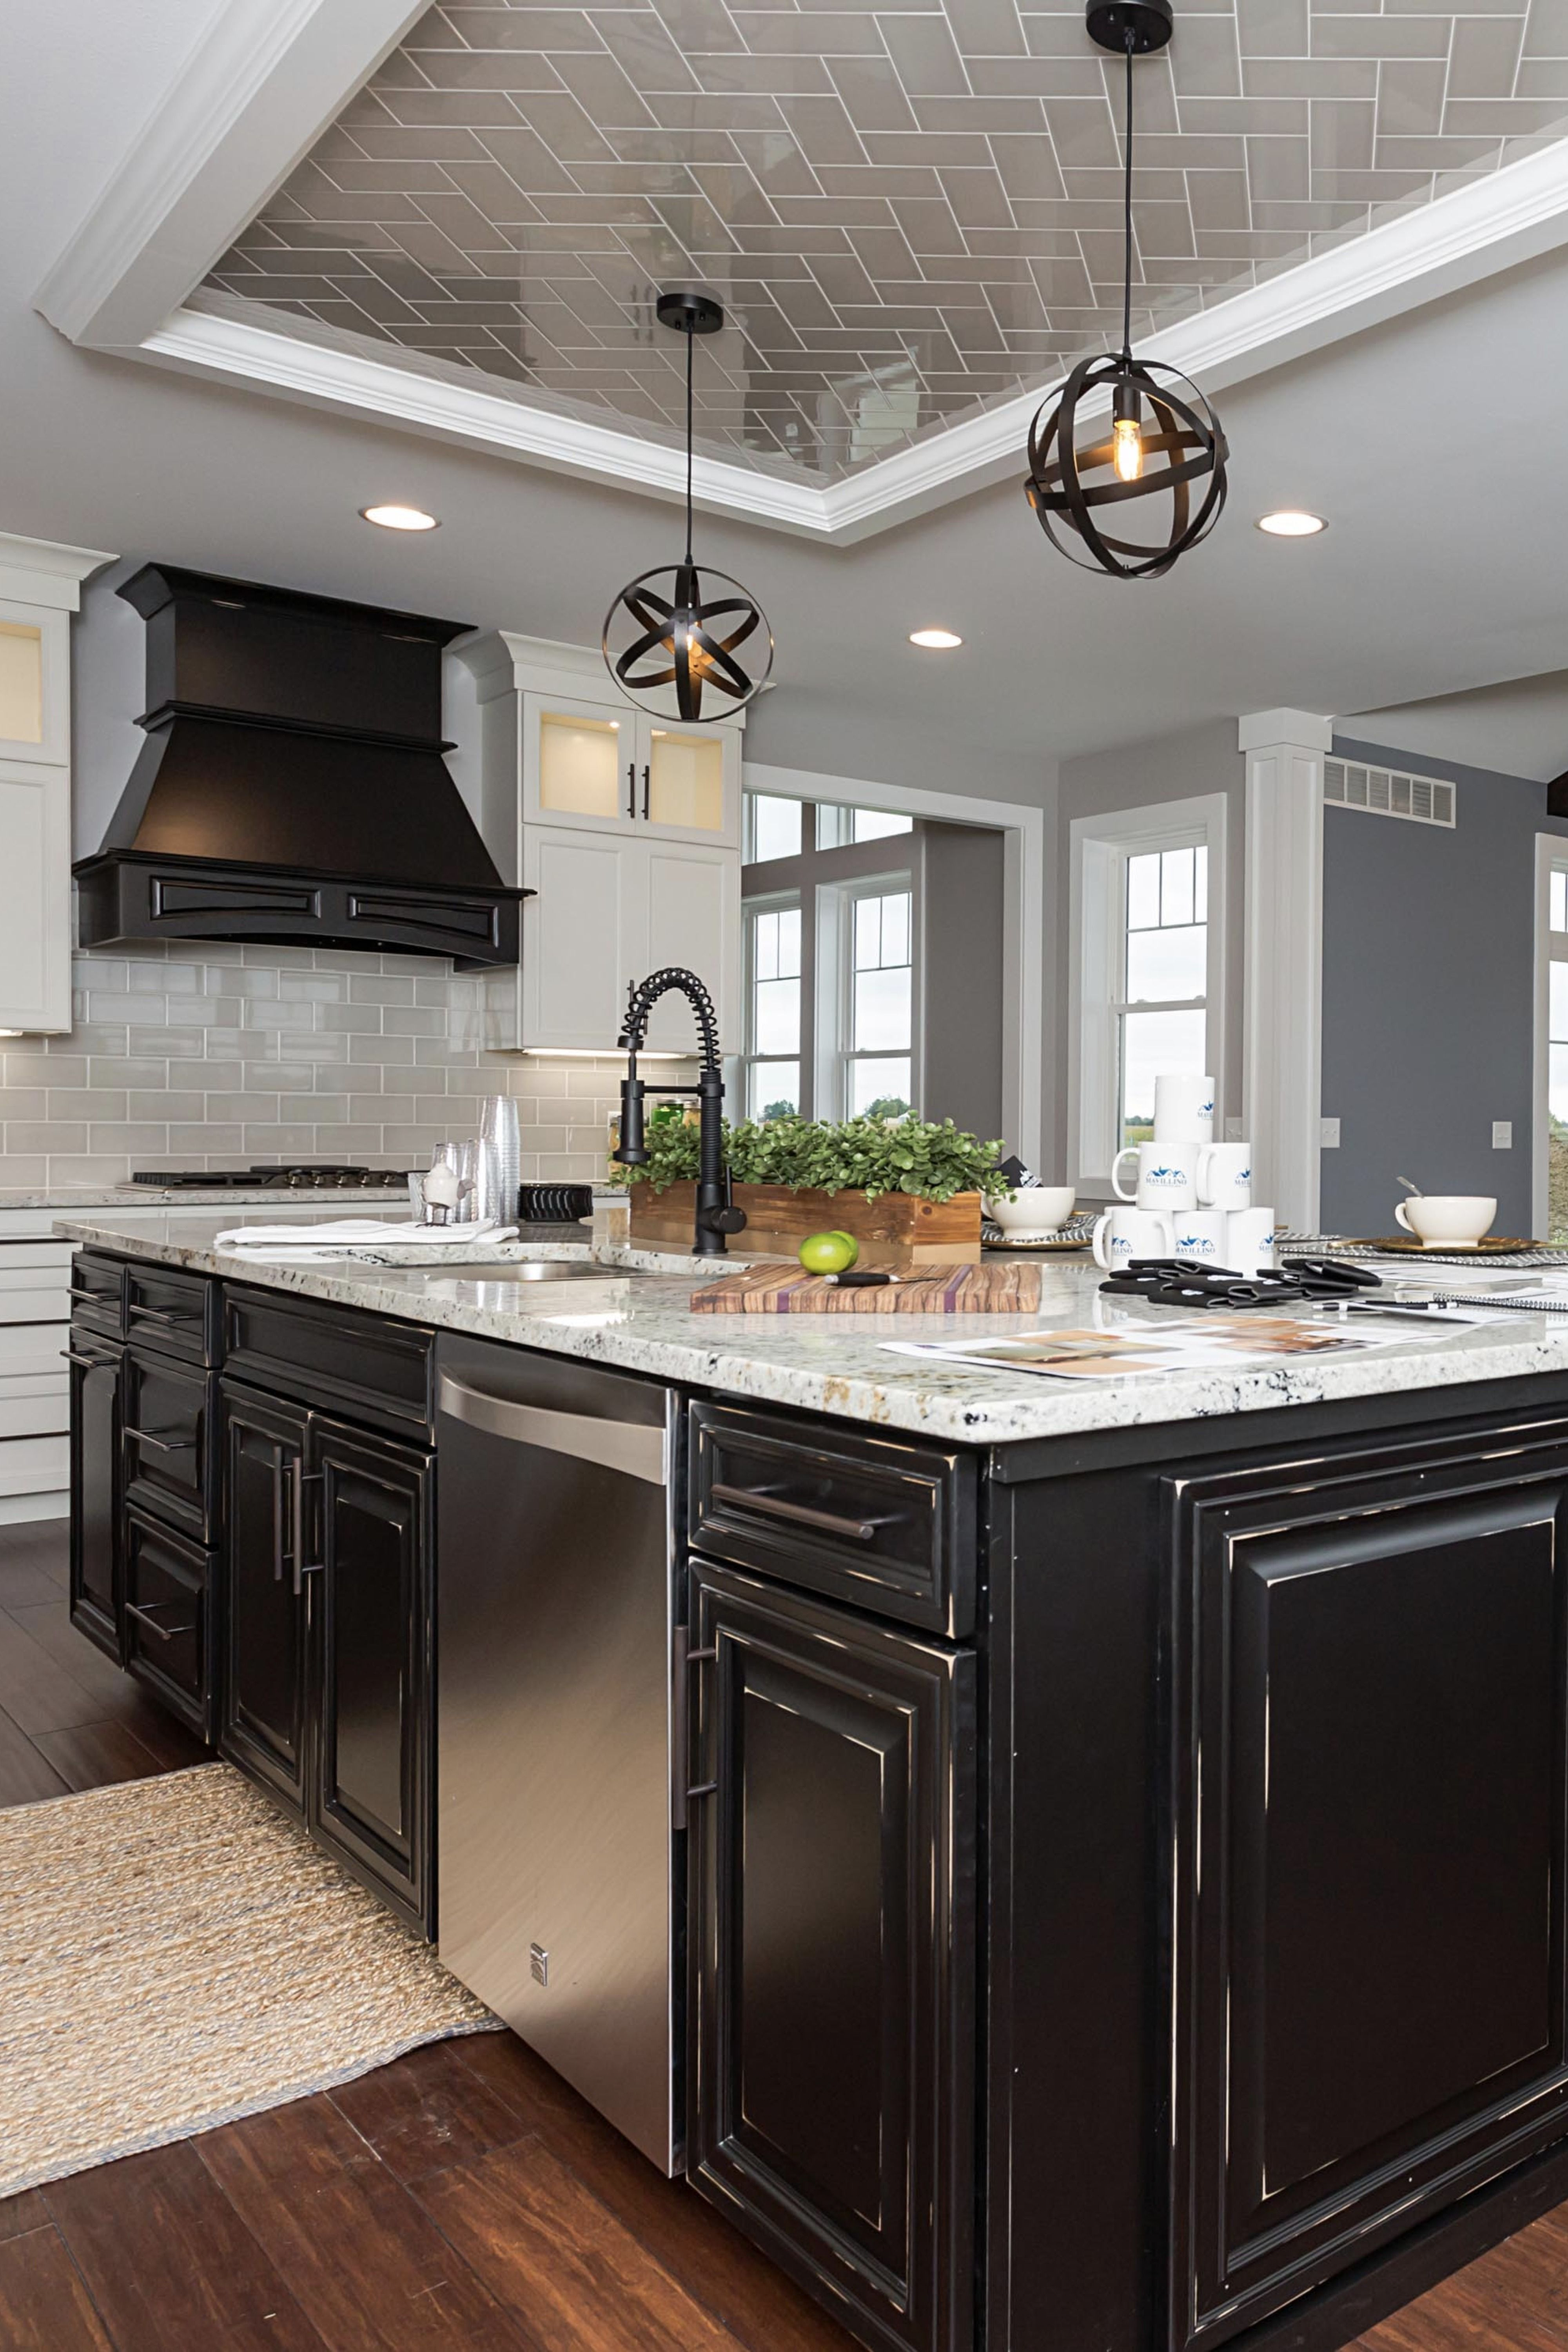 Nothing Says Rustic Quite Like Our Ebony Rub Through Cabinets In This Grand Two Toned Kitchen Online Kitchen Cabinets Kitchen Cabinets Cabinets Online